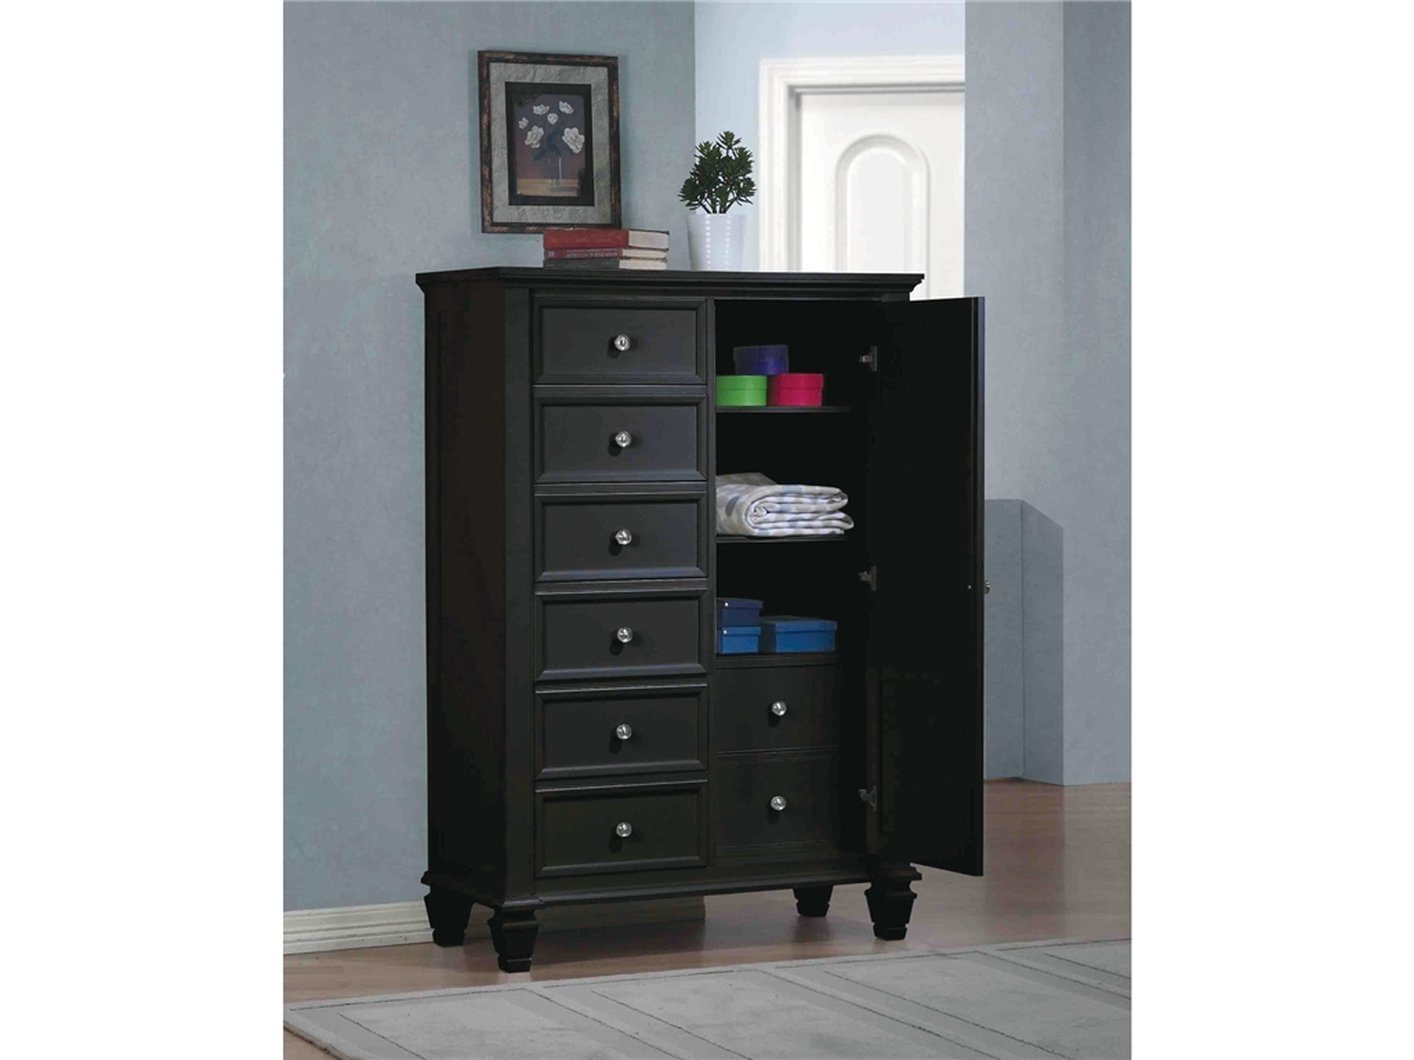 Image Result For High Gloss Black Chest Of Drawers